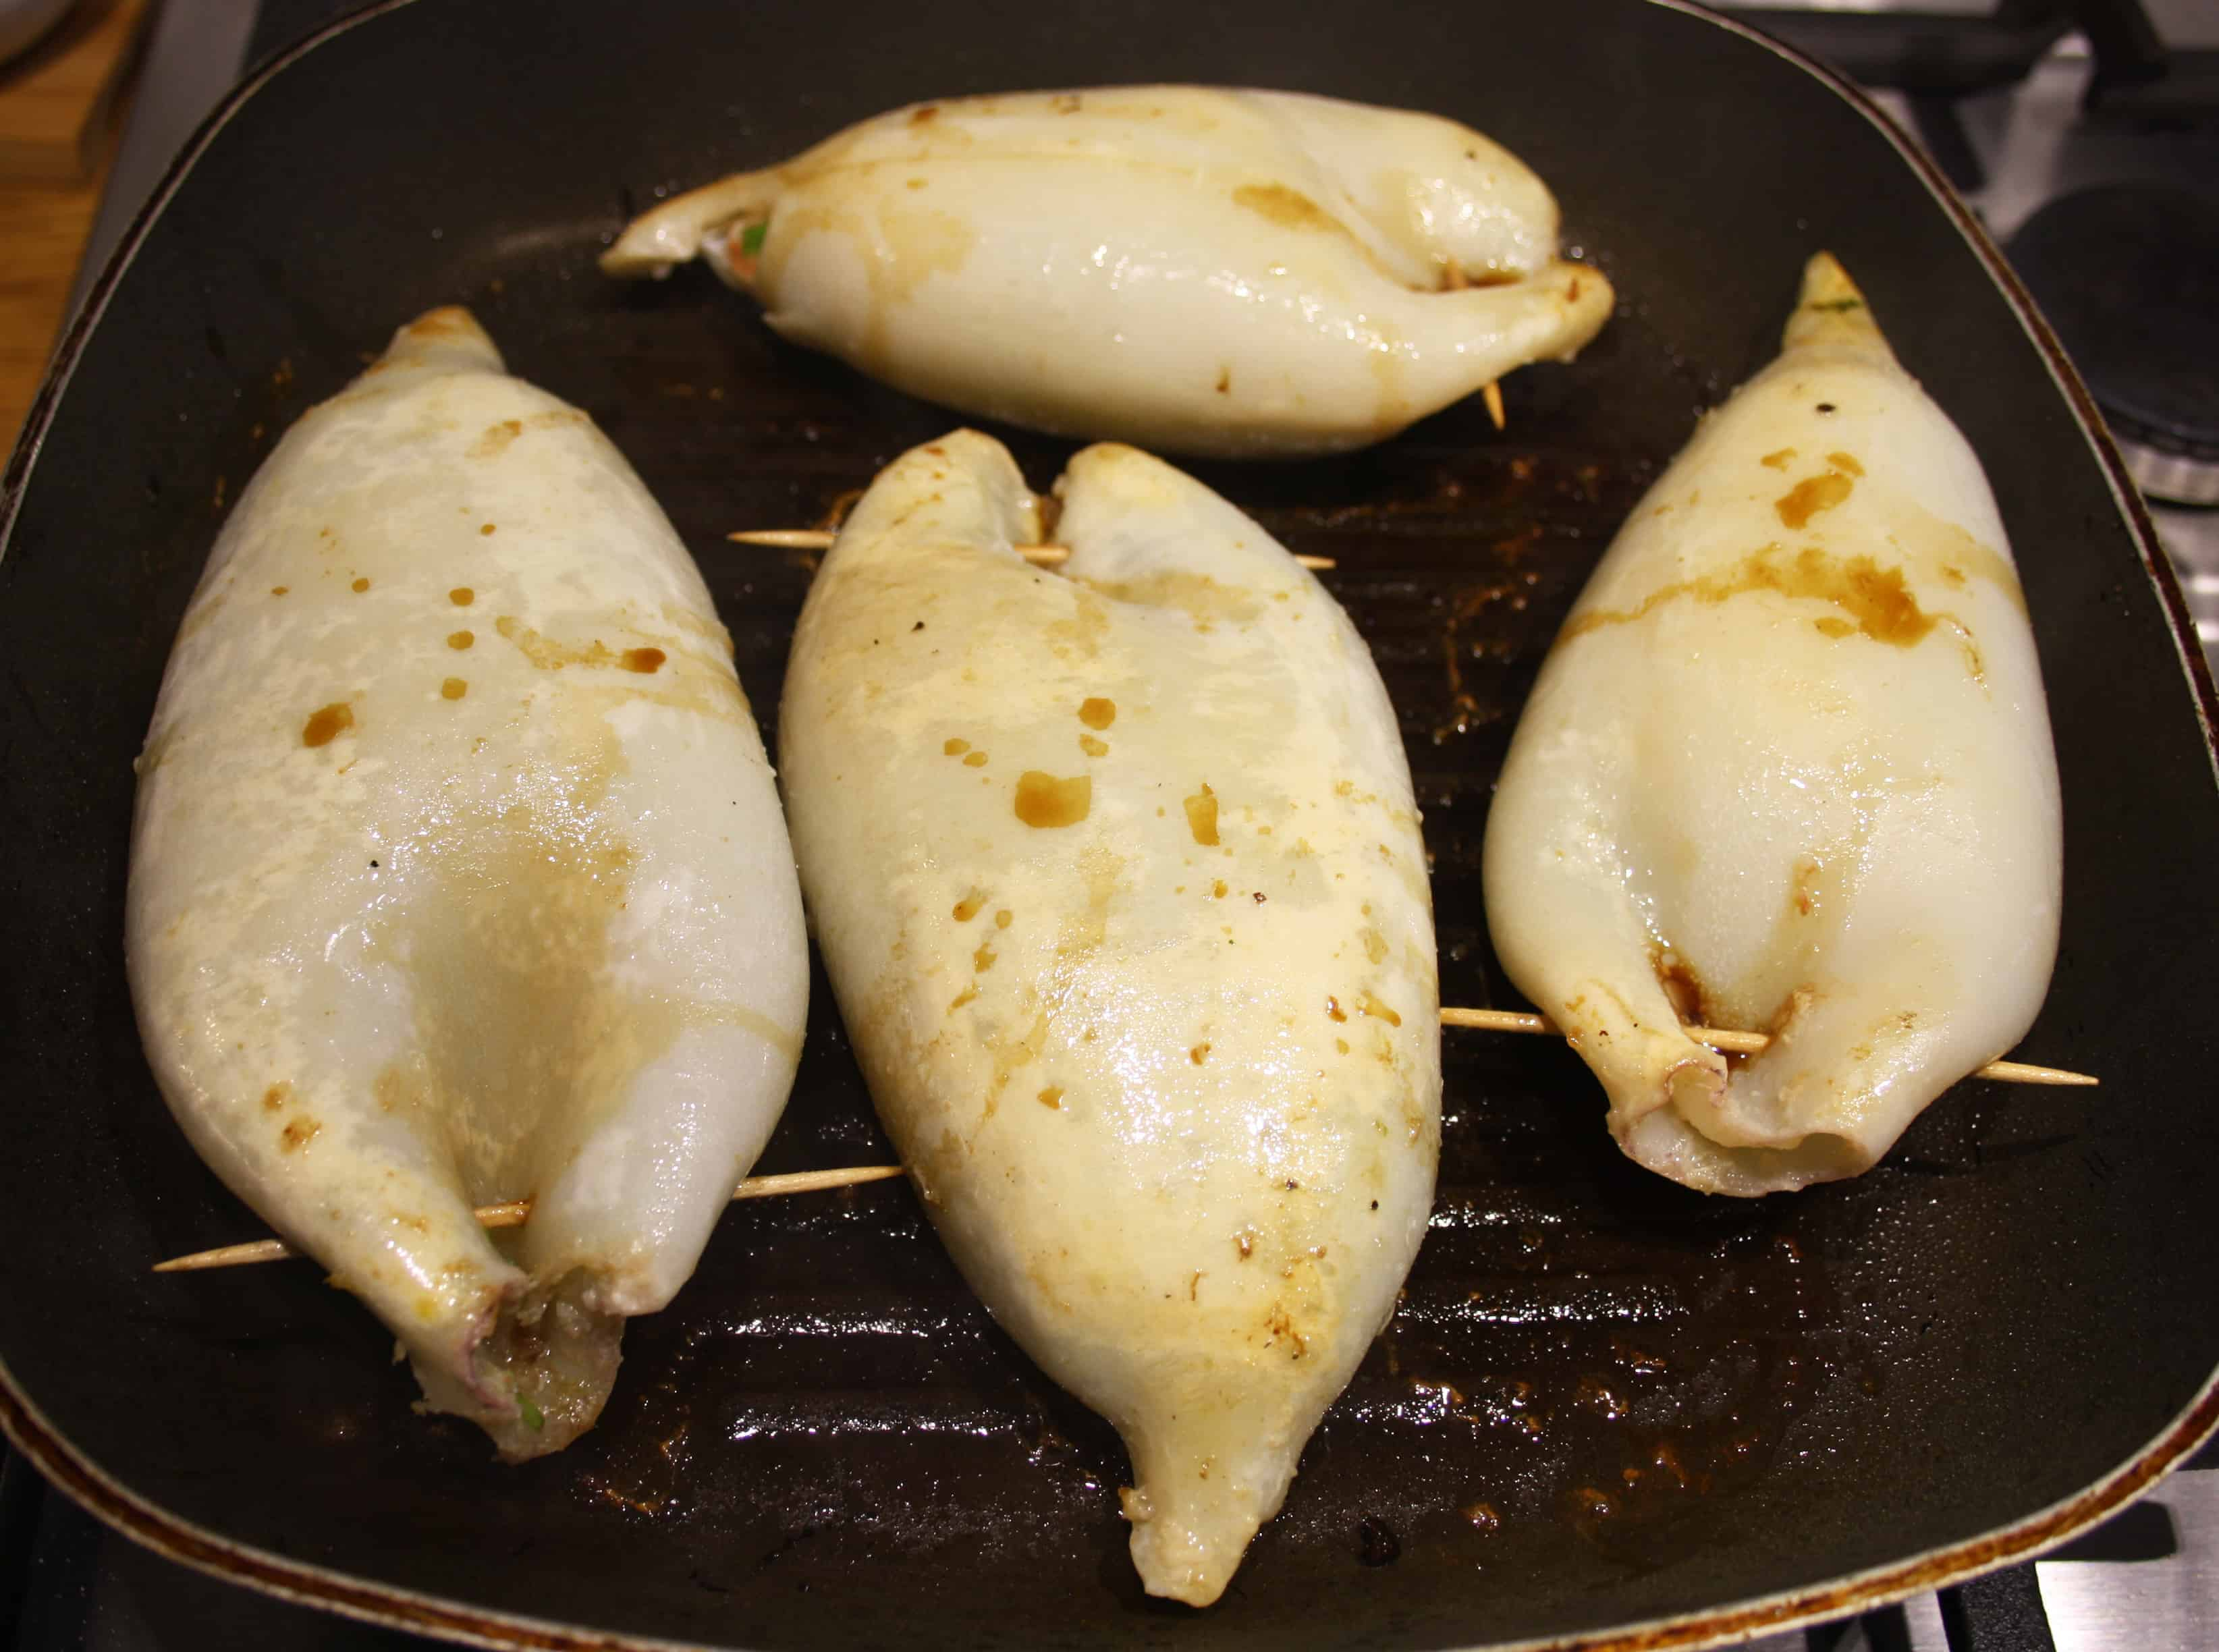 stuffed squid frying in a griddle pan.